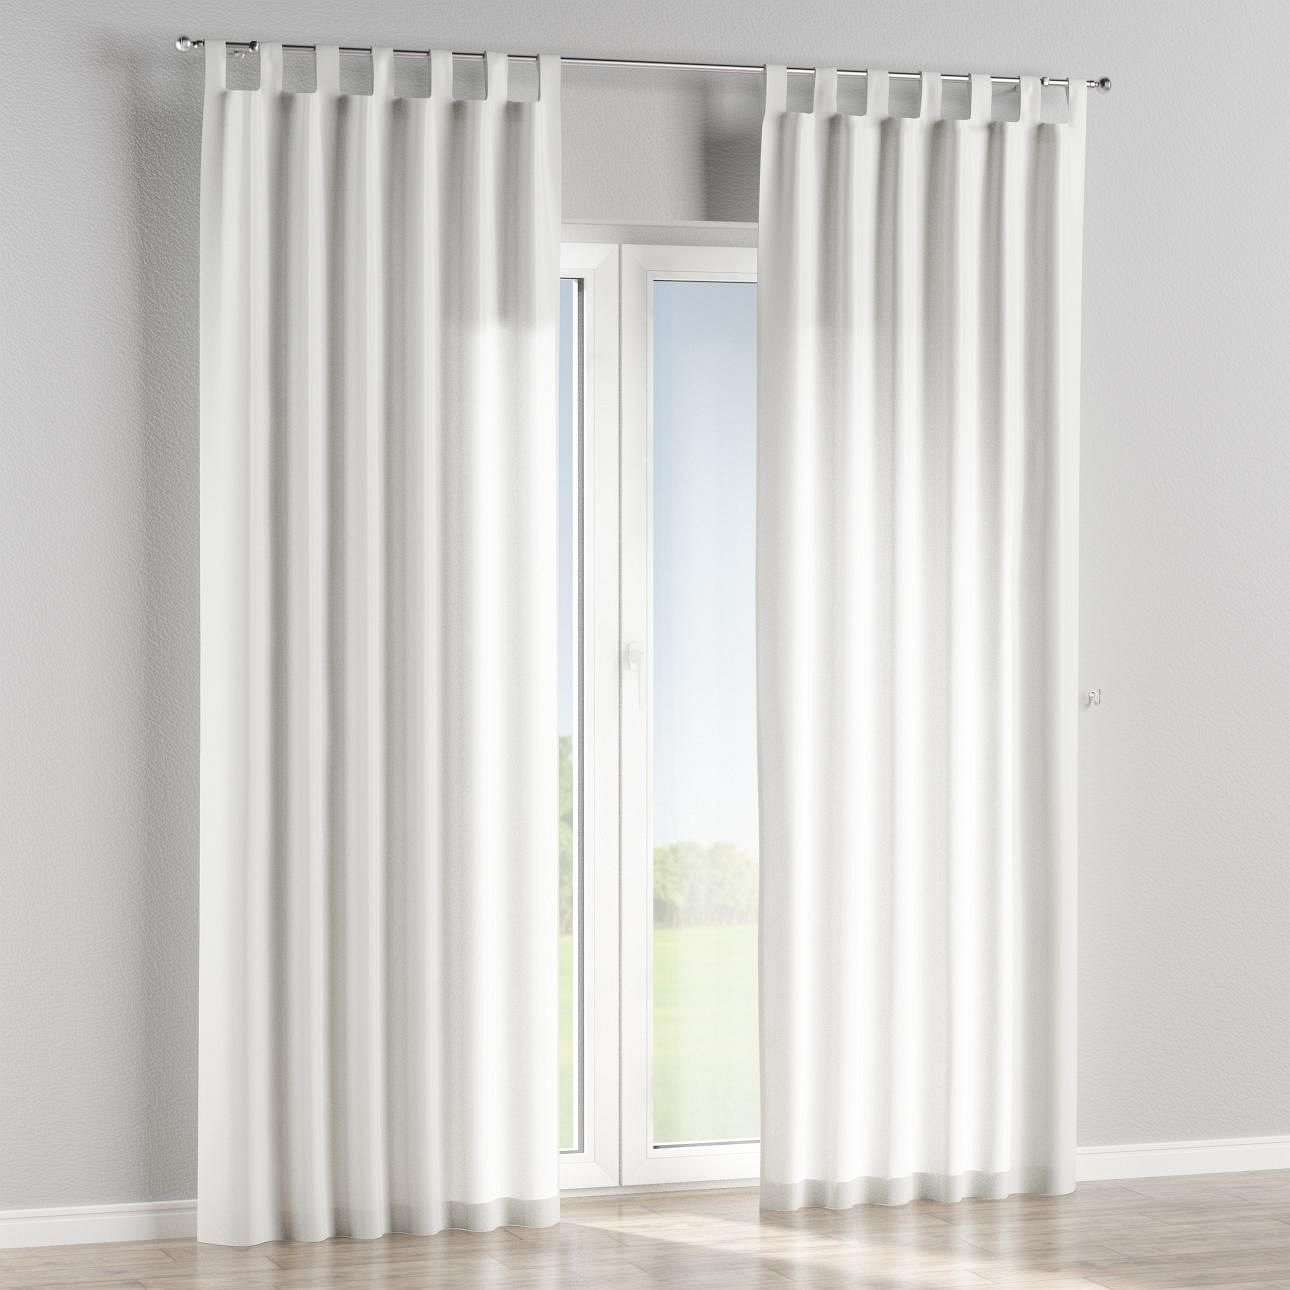 Tab top curtains in collection Norge, fabric: 140-87